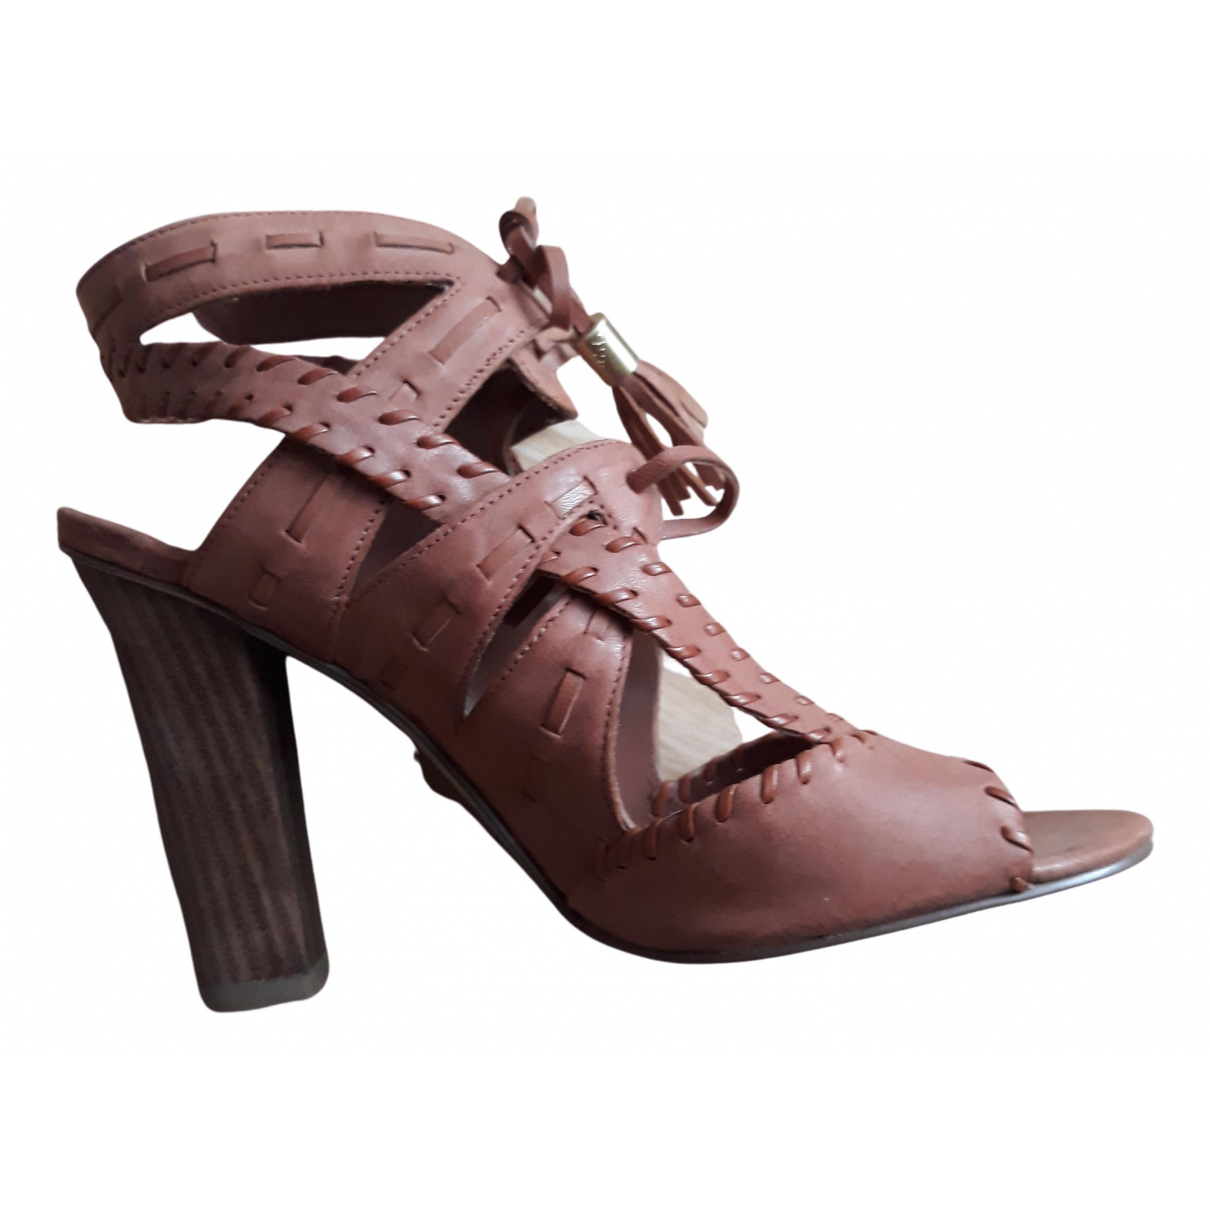 Guess N Brown Leather Heels for Women 37 EU